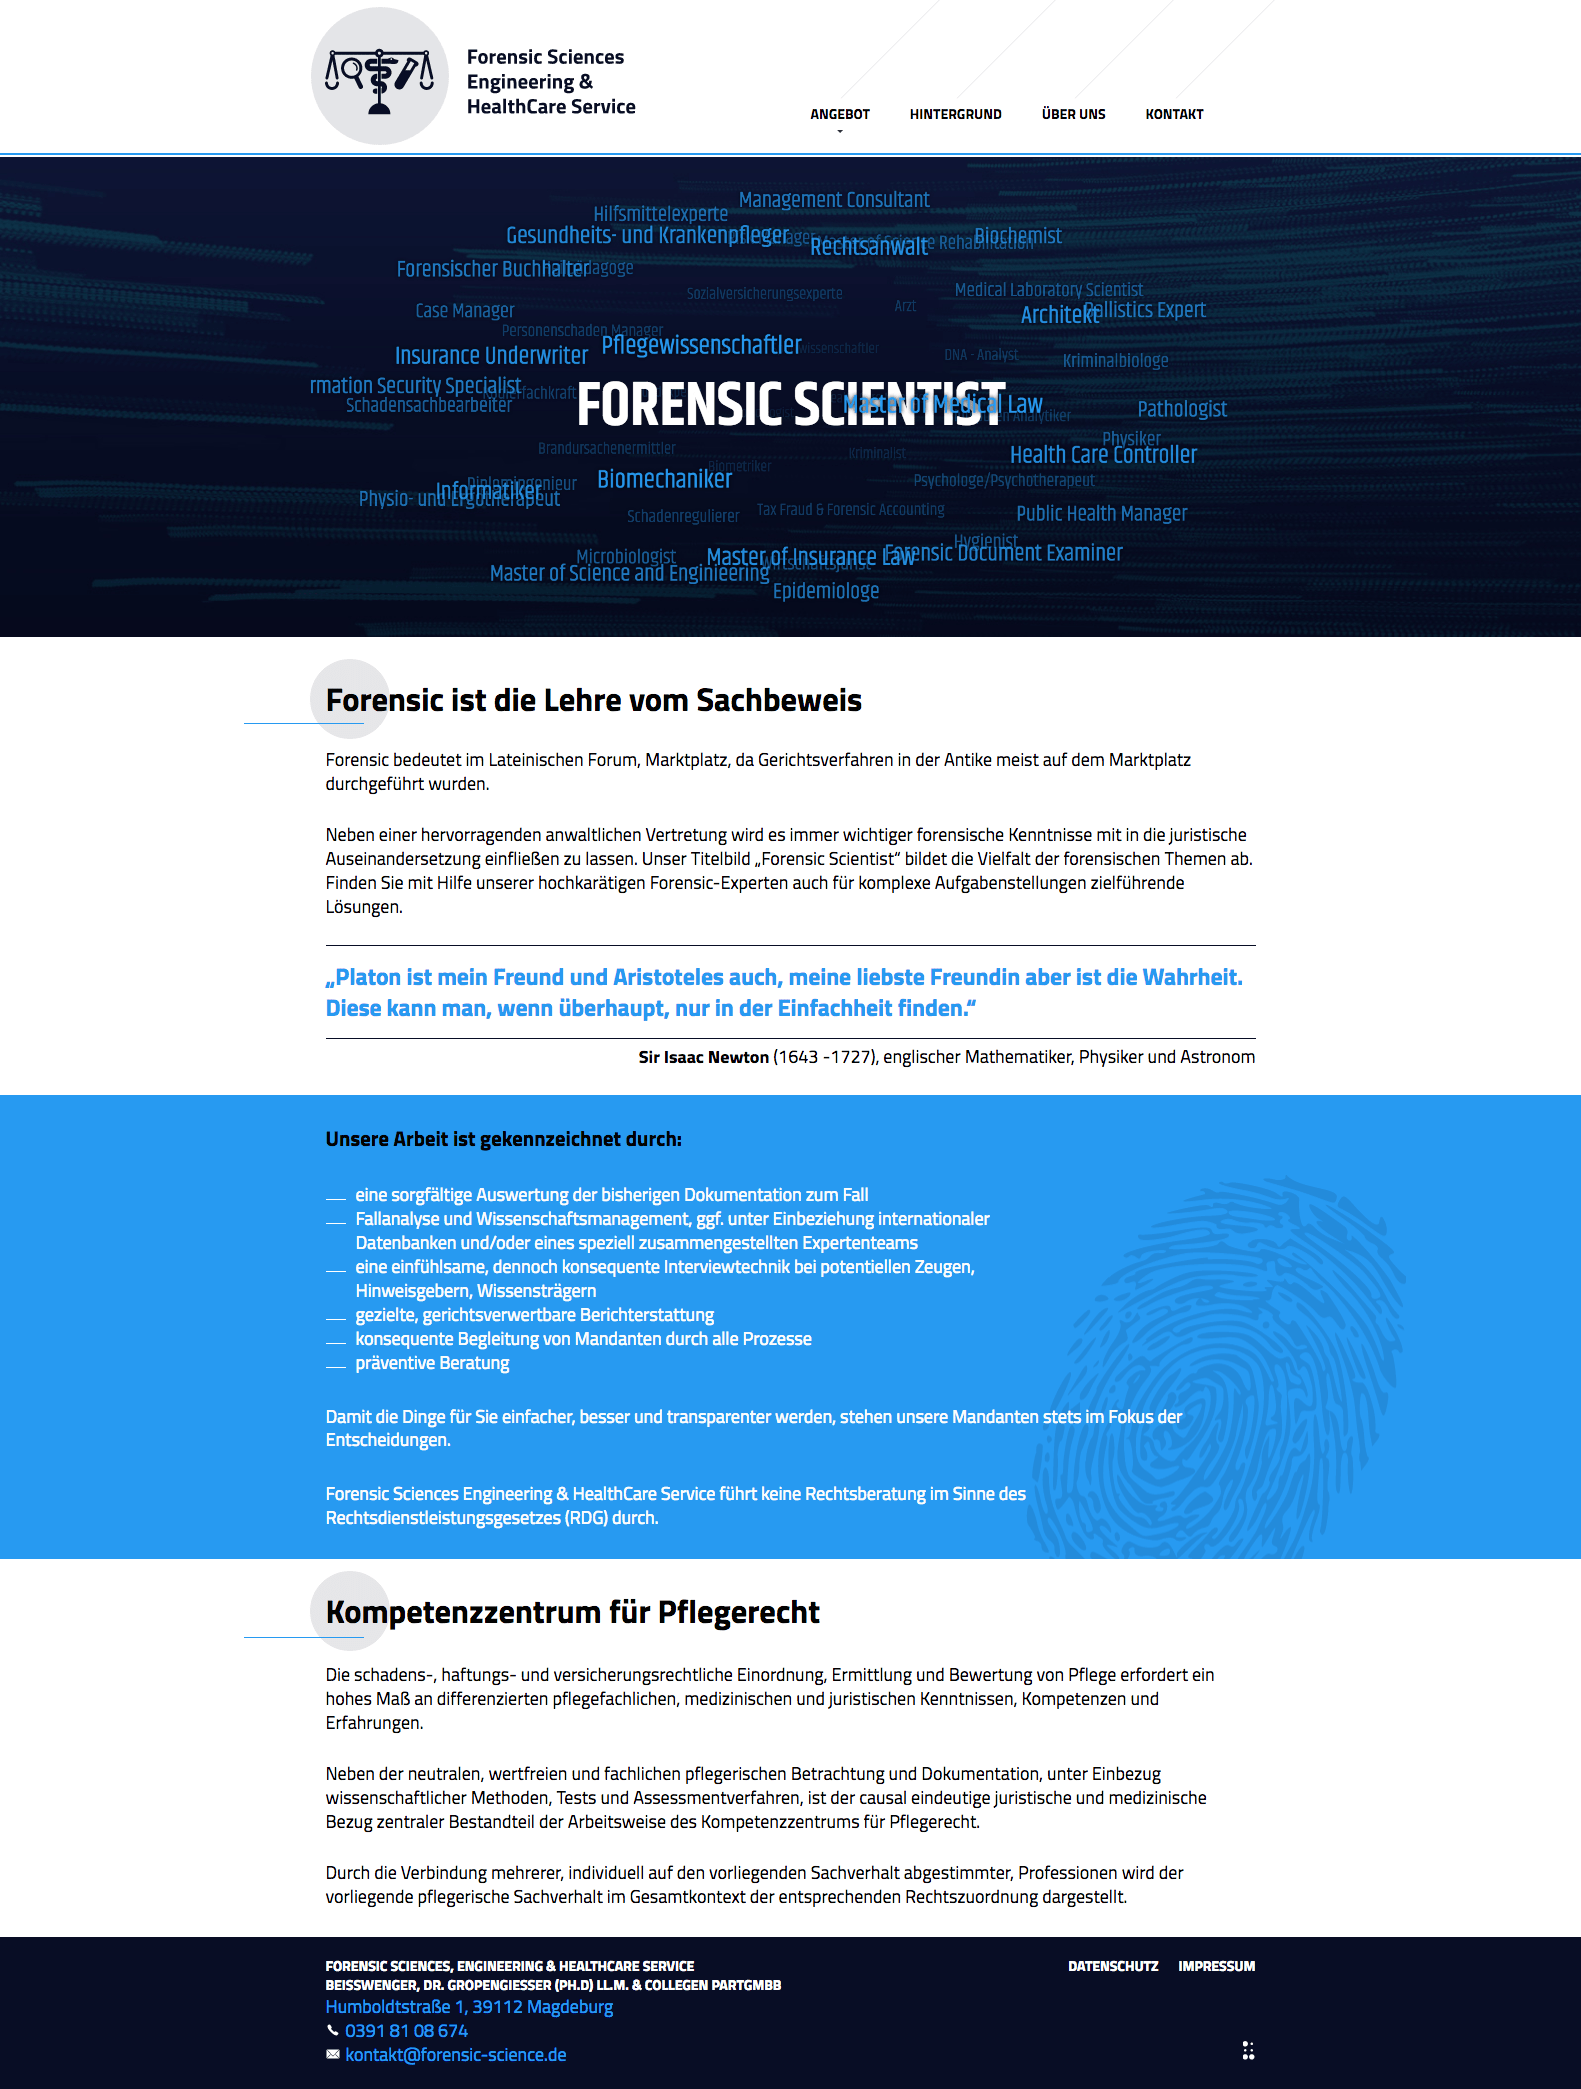 Webdesign + Programmierung für  Forensic Sciences Engineering & HealthCare Service